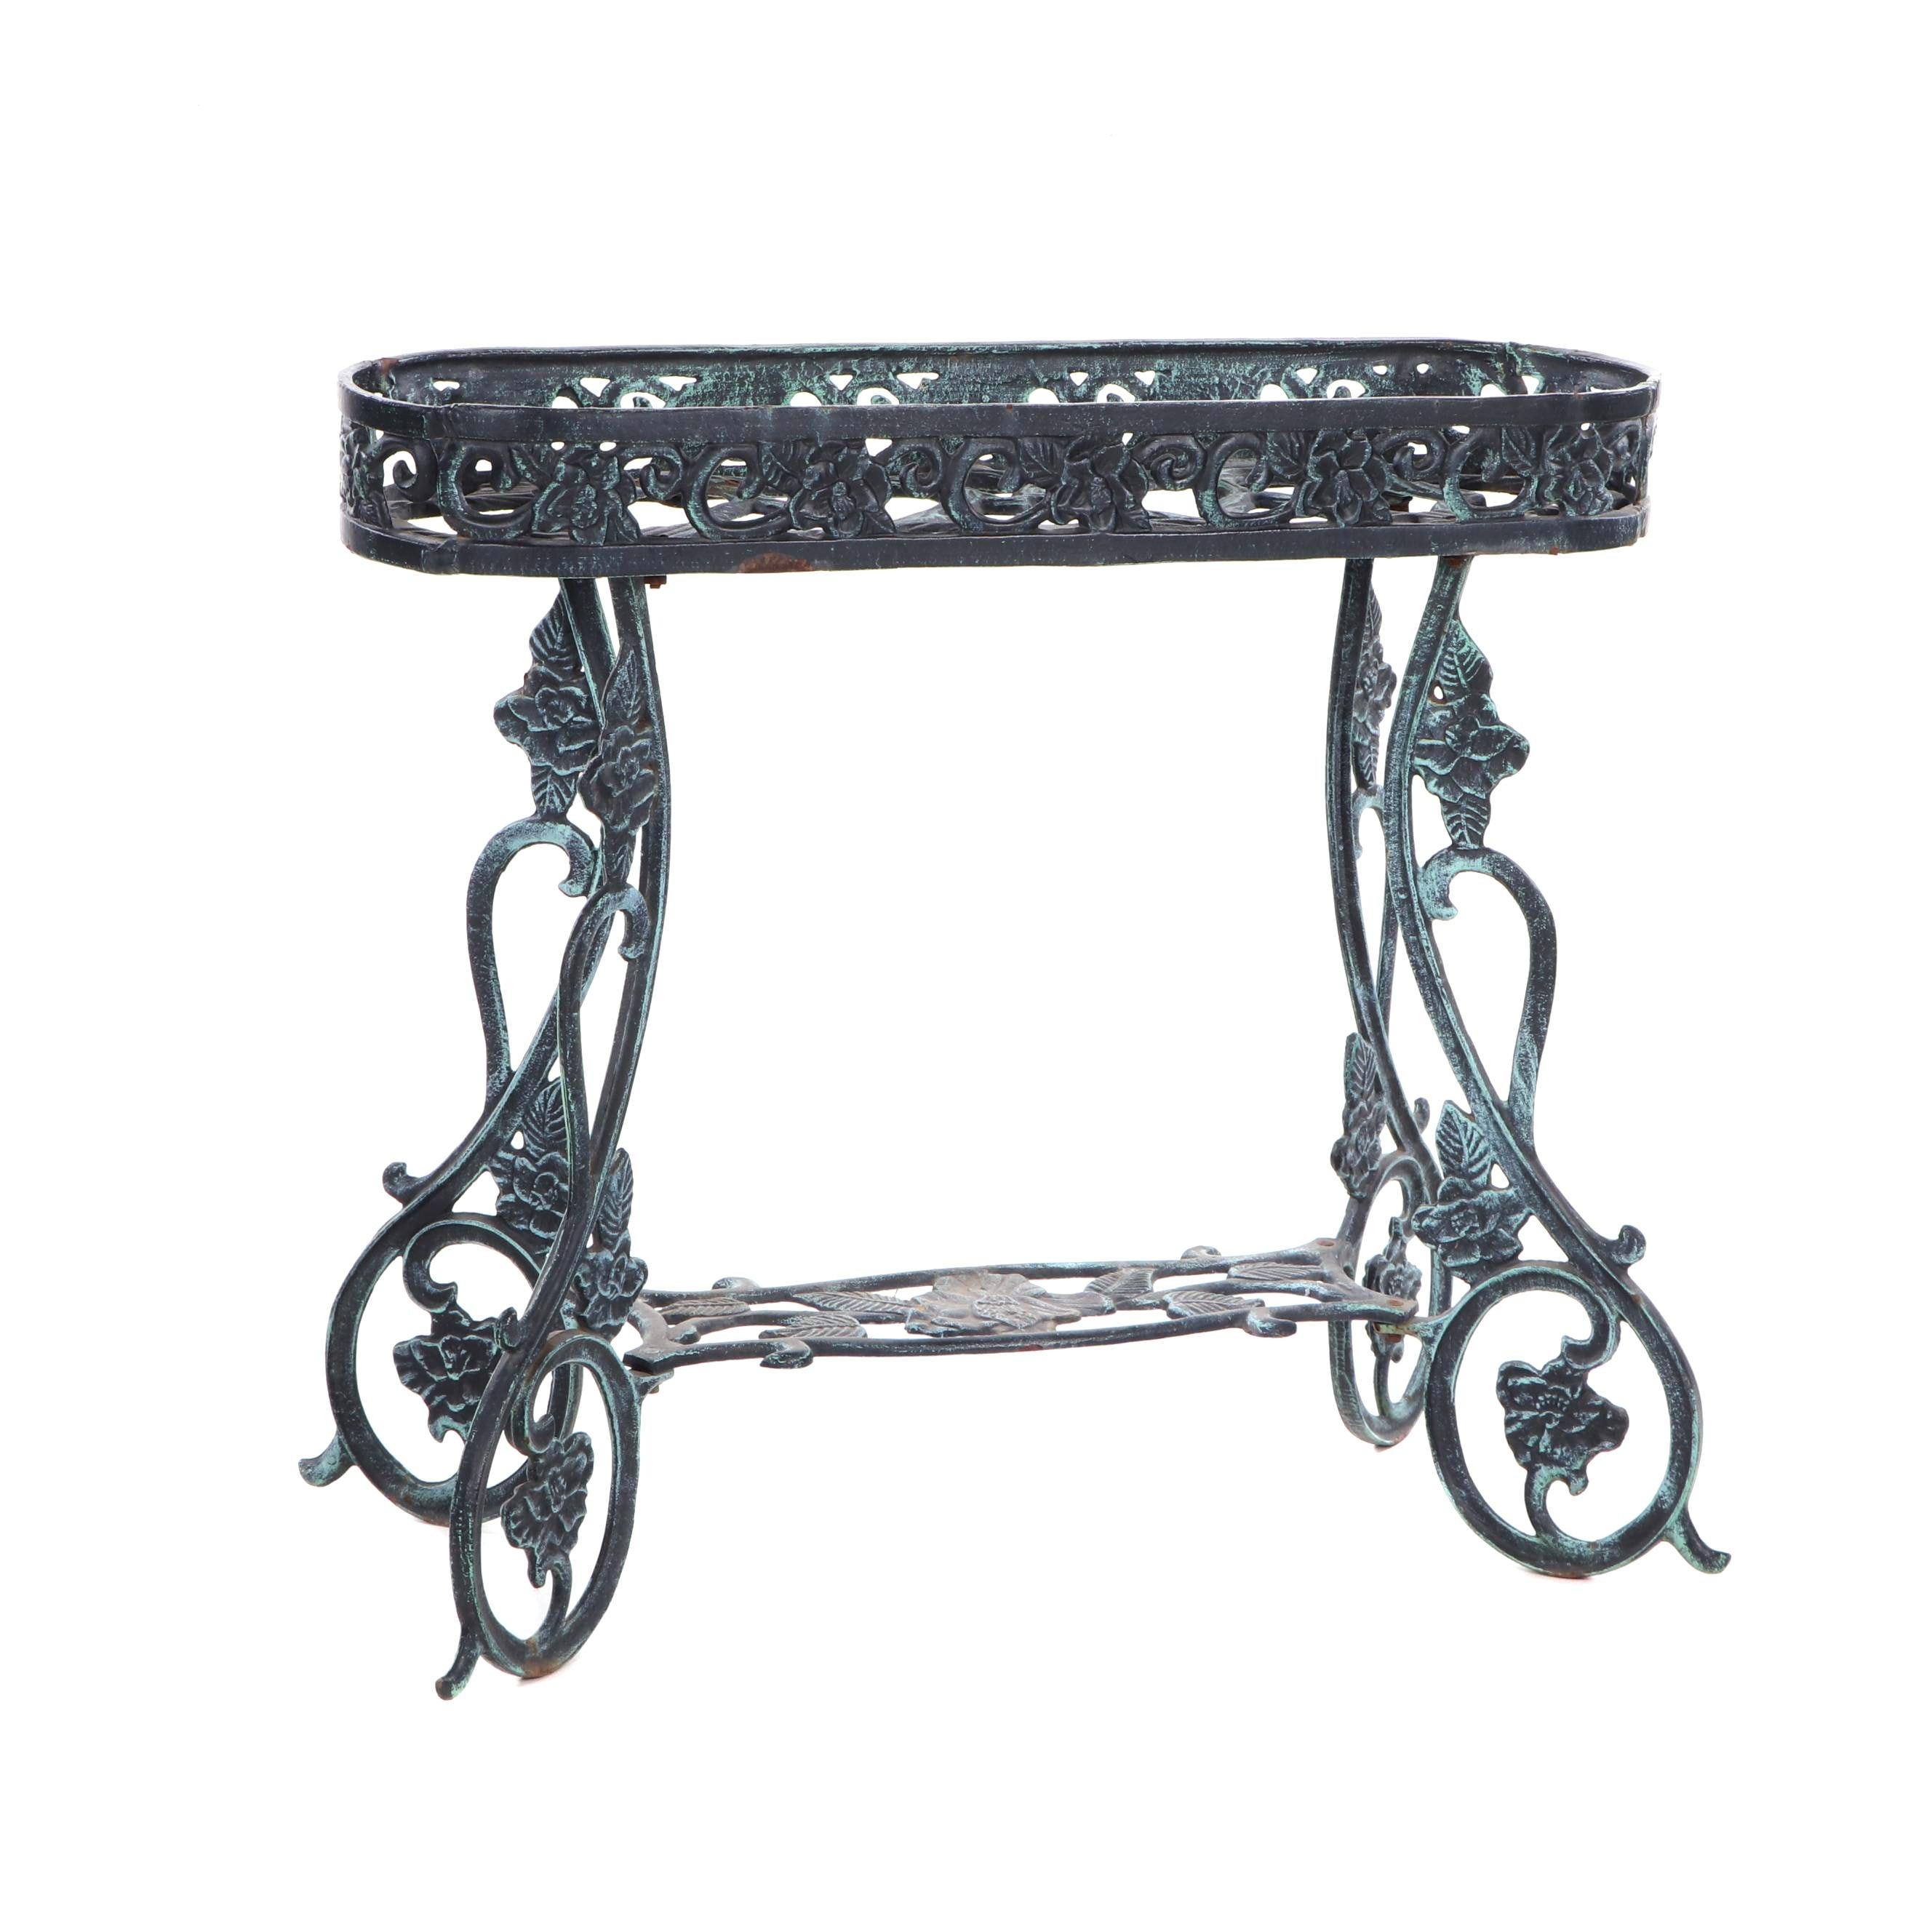 Cast Iron Plant Stand with Foliate Design, Mid/Late 20th Century